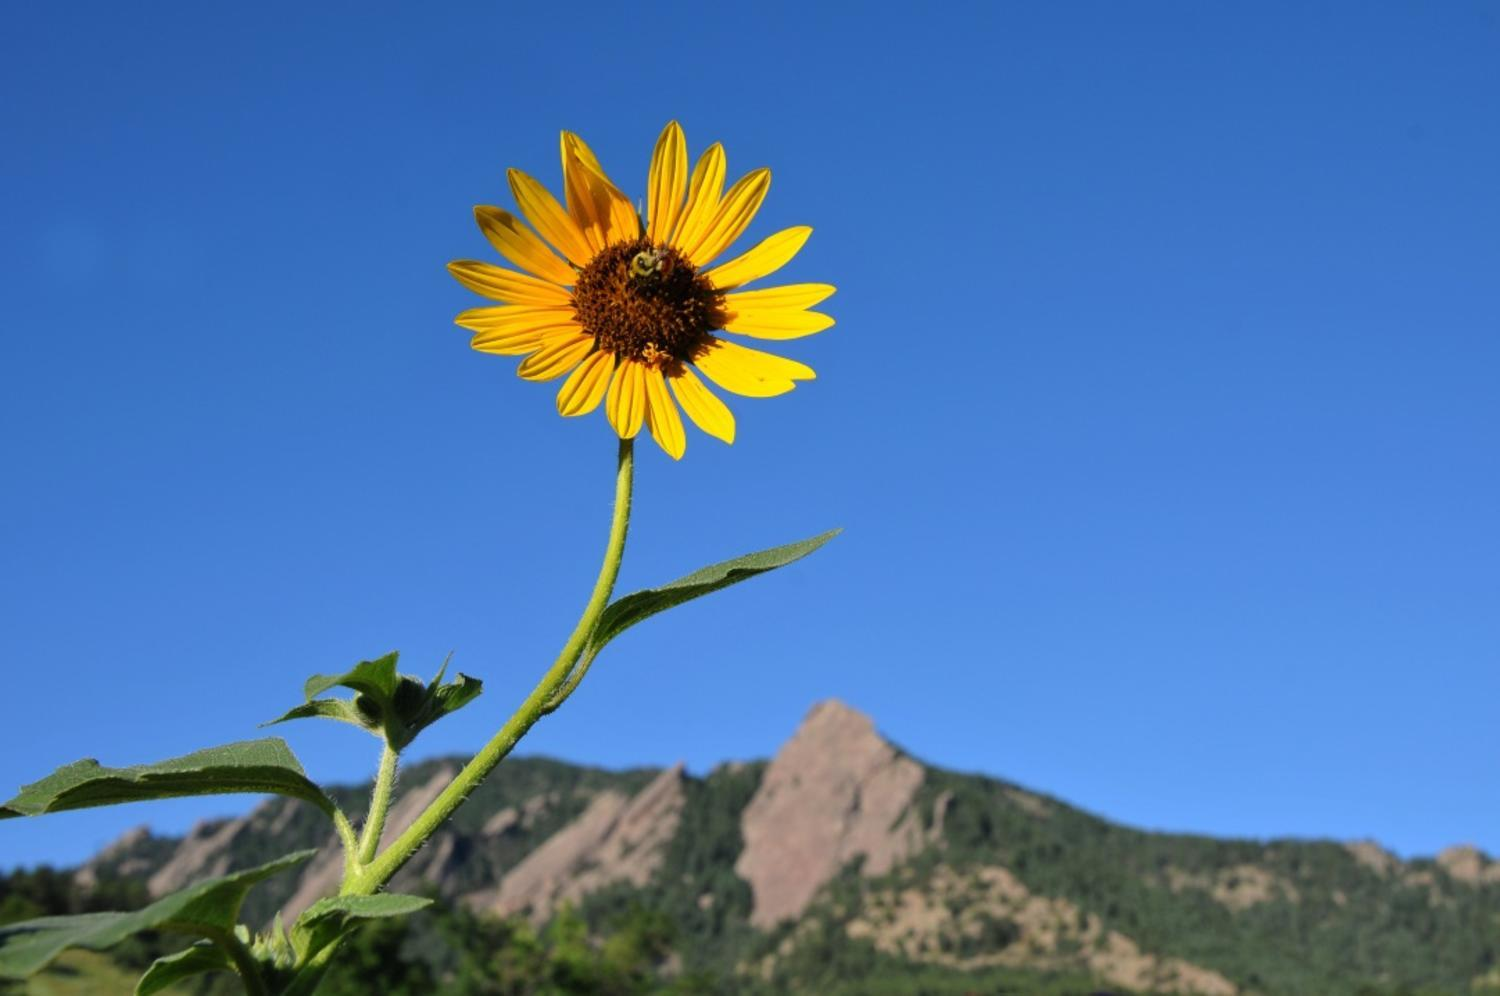 A sunflower grows in a garden in front of the Flatirons at Chautauqua Park in Boulder, Colorado.